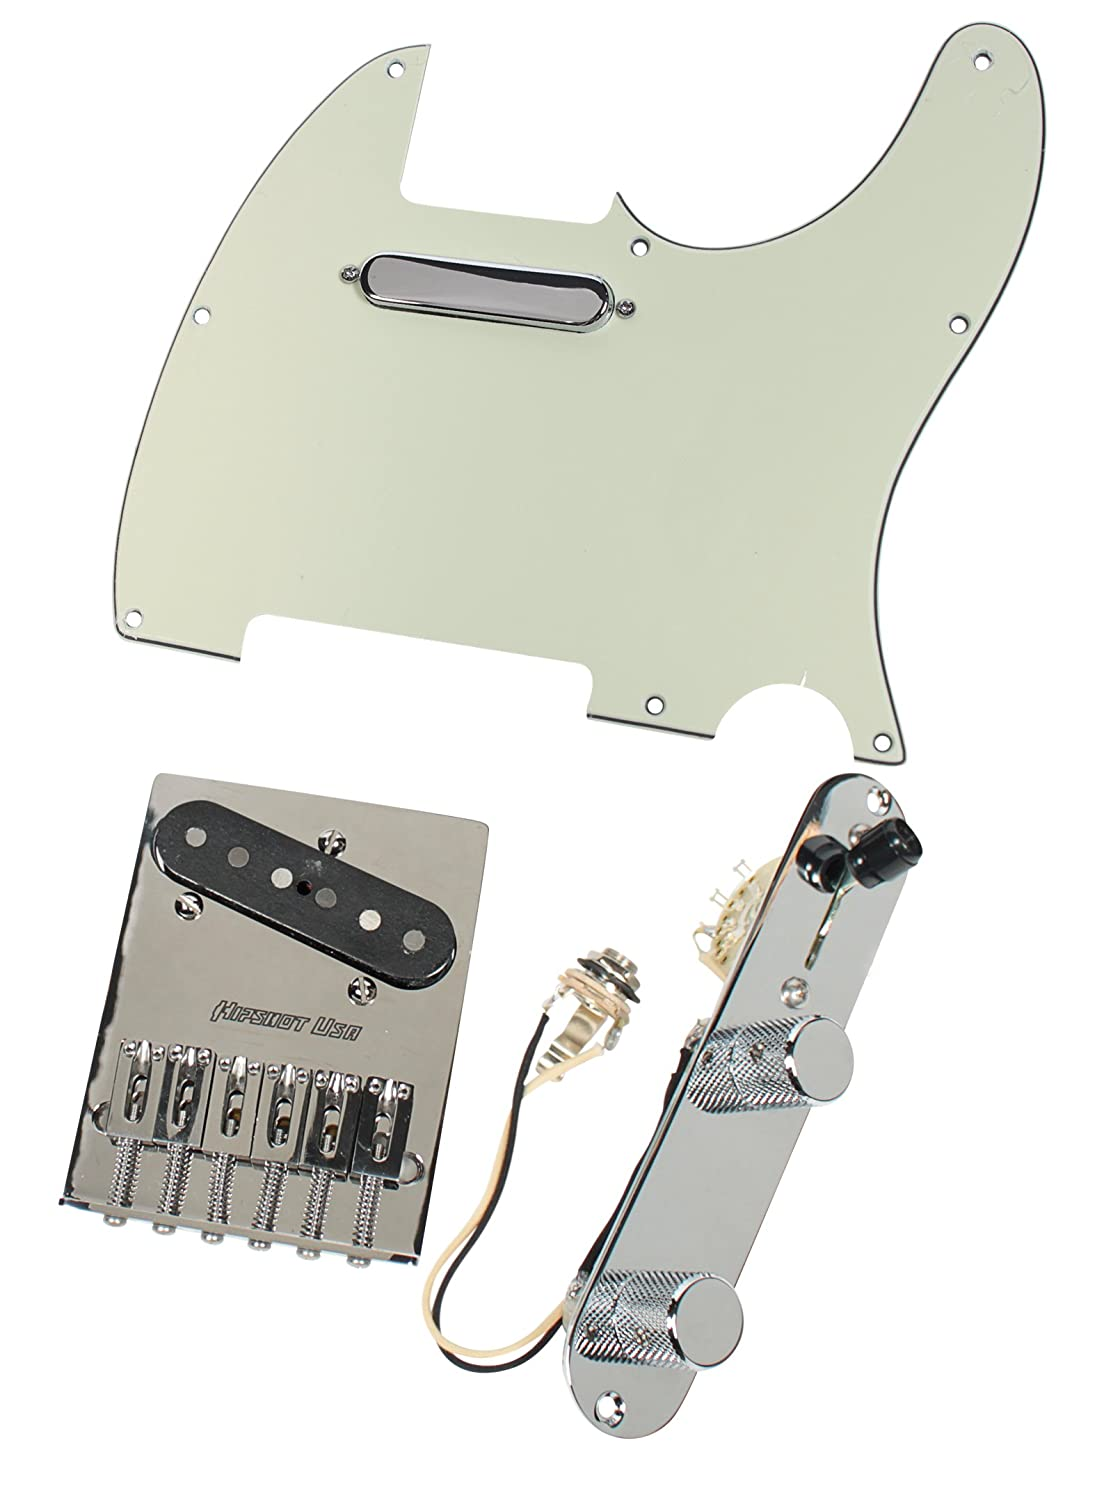 Fender Tele Telecaster Loaded Pickguard CS51 No Caster Pickups Hipshot Bridge MG